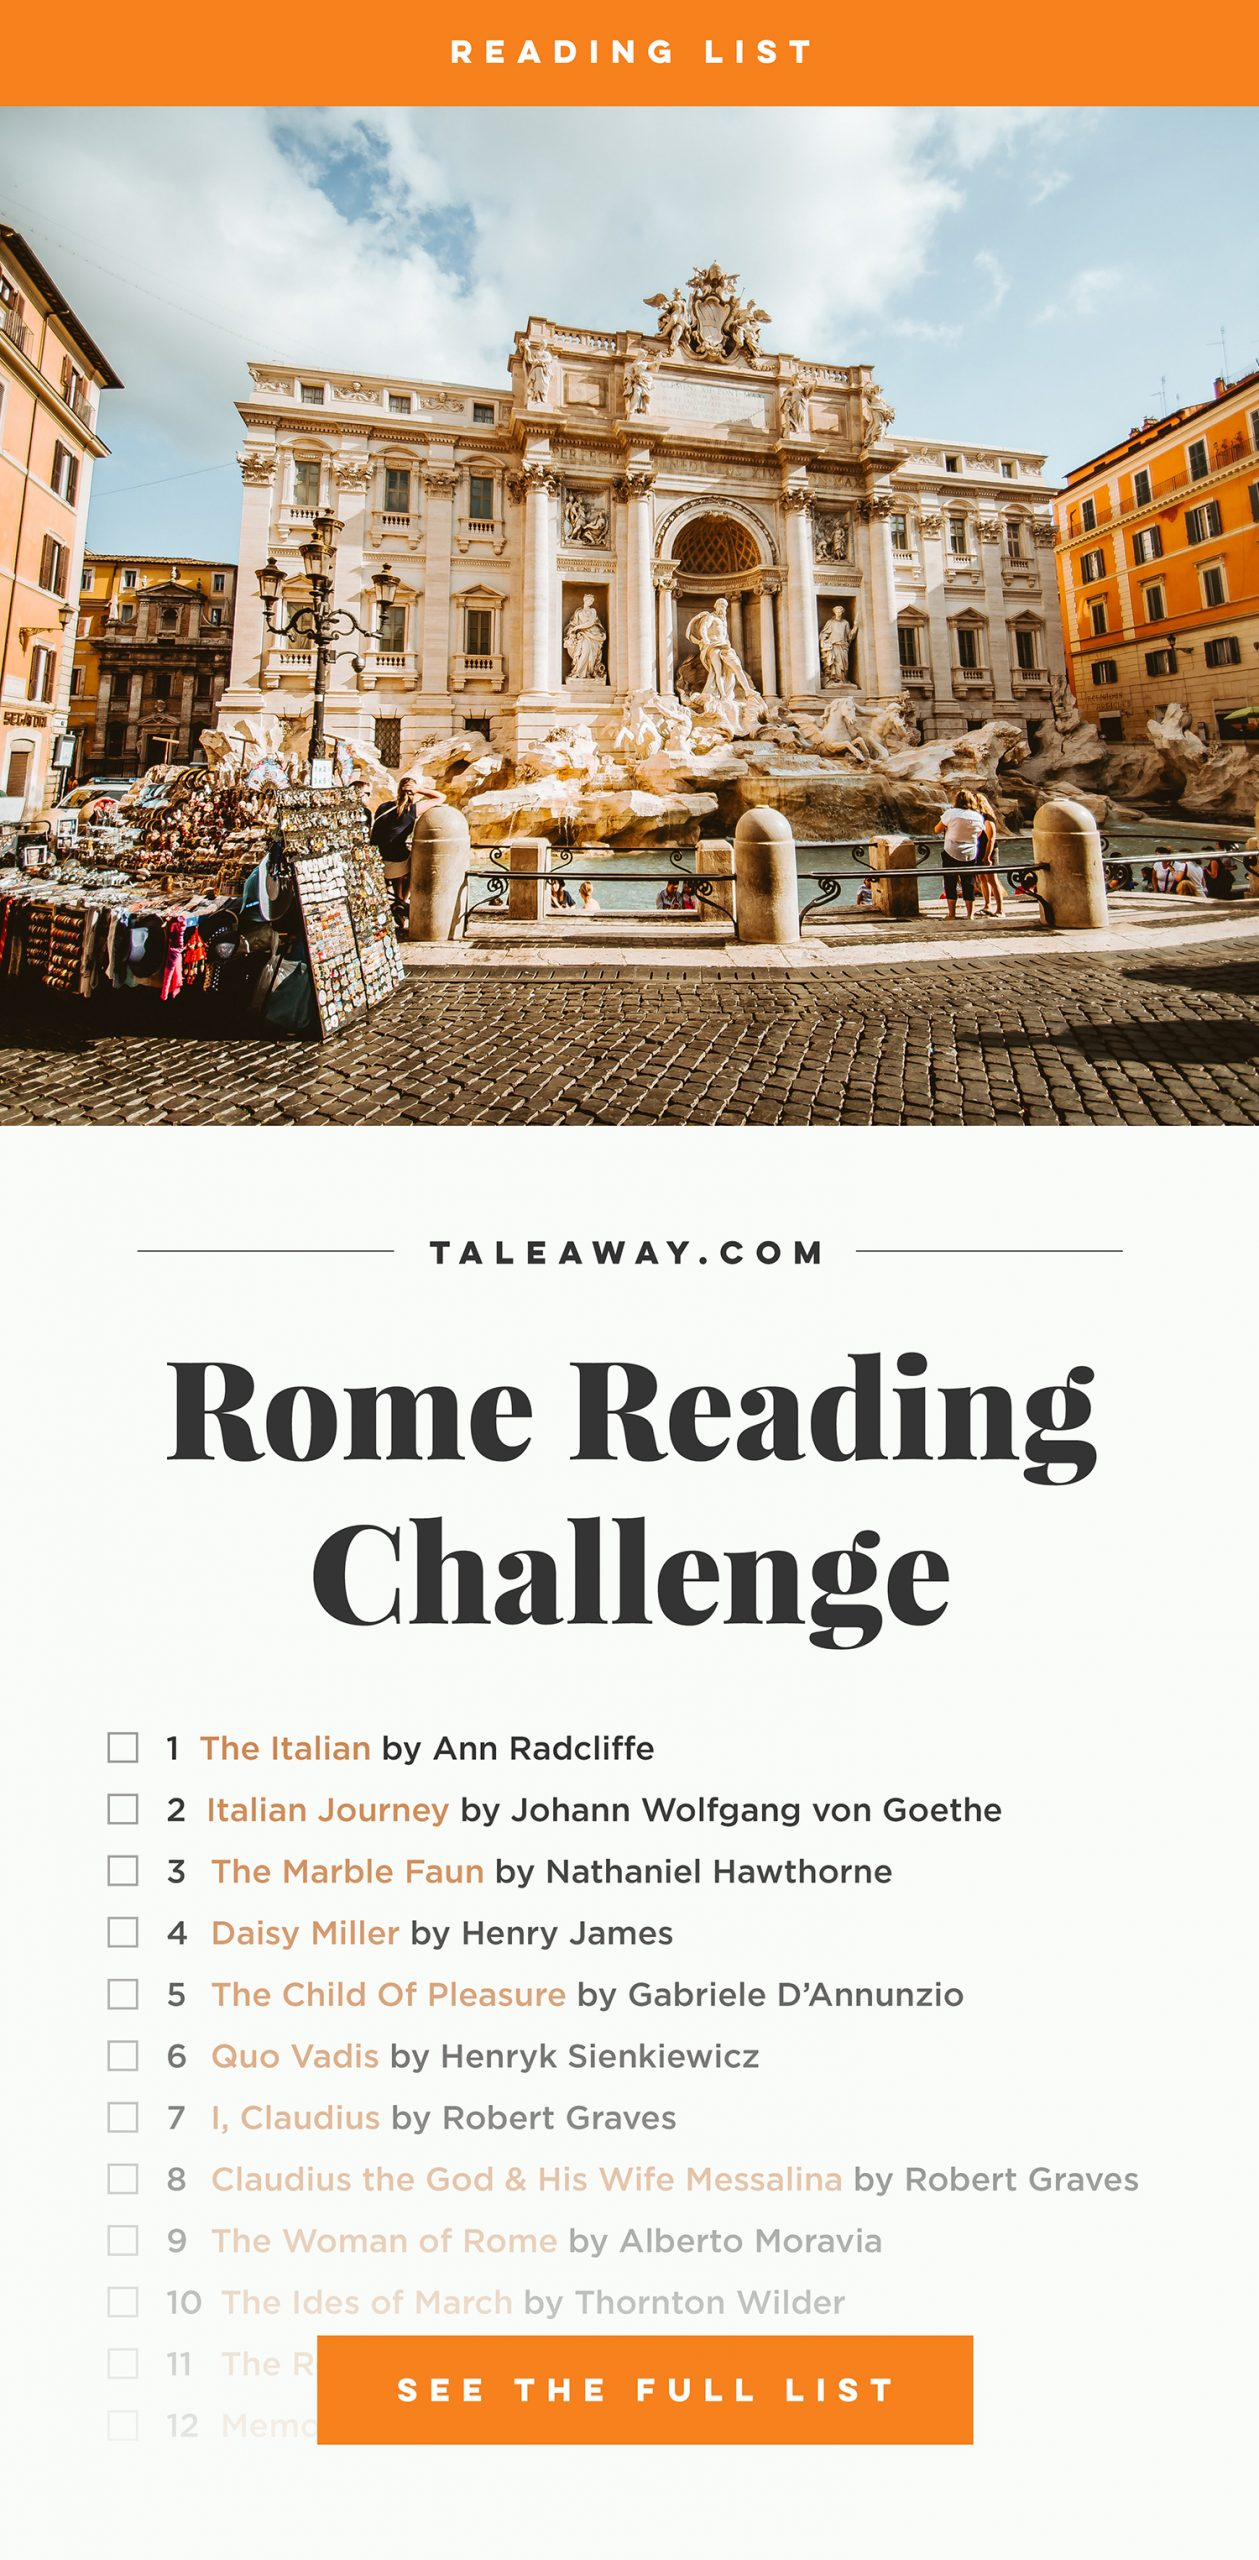 Books Set in Rome: rome books, rome novels, rome literature, rome fiction, rome historical fiction, ancient rome books, rome books fiction, best rome novels, best rome fiction, ancient rome fiction, ancient rome novels, roman authors, best books set in rome, popular books set in rome, books about rome, rome reading challenge, rome reading list, rome travel, rome history, rome travel books, rome books to read, novels set in rome, books to read about rome, books to read before going to rome, books set in italy, italy books